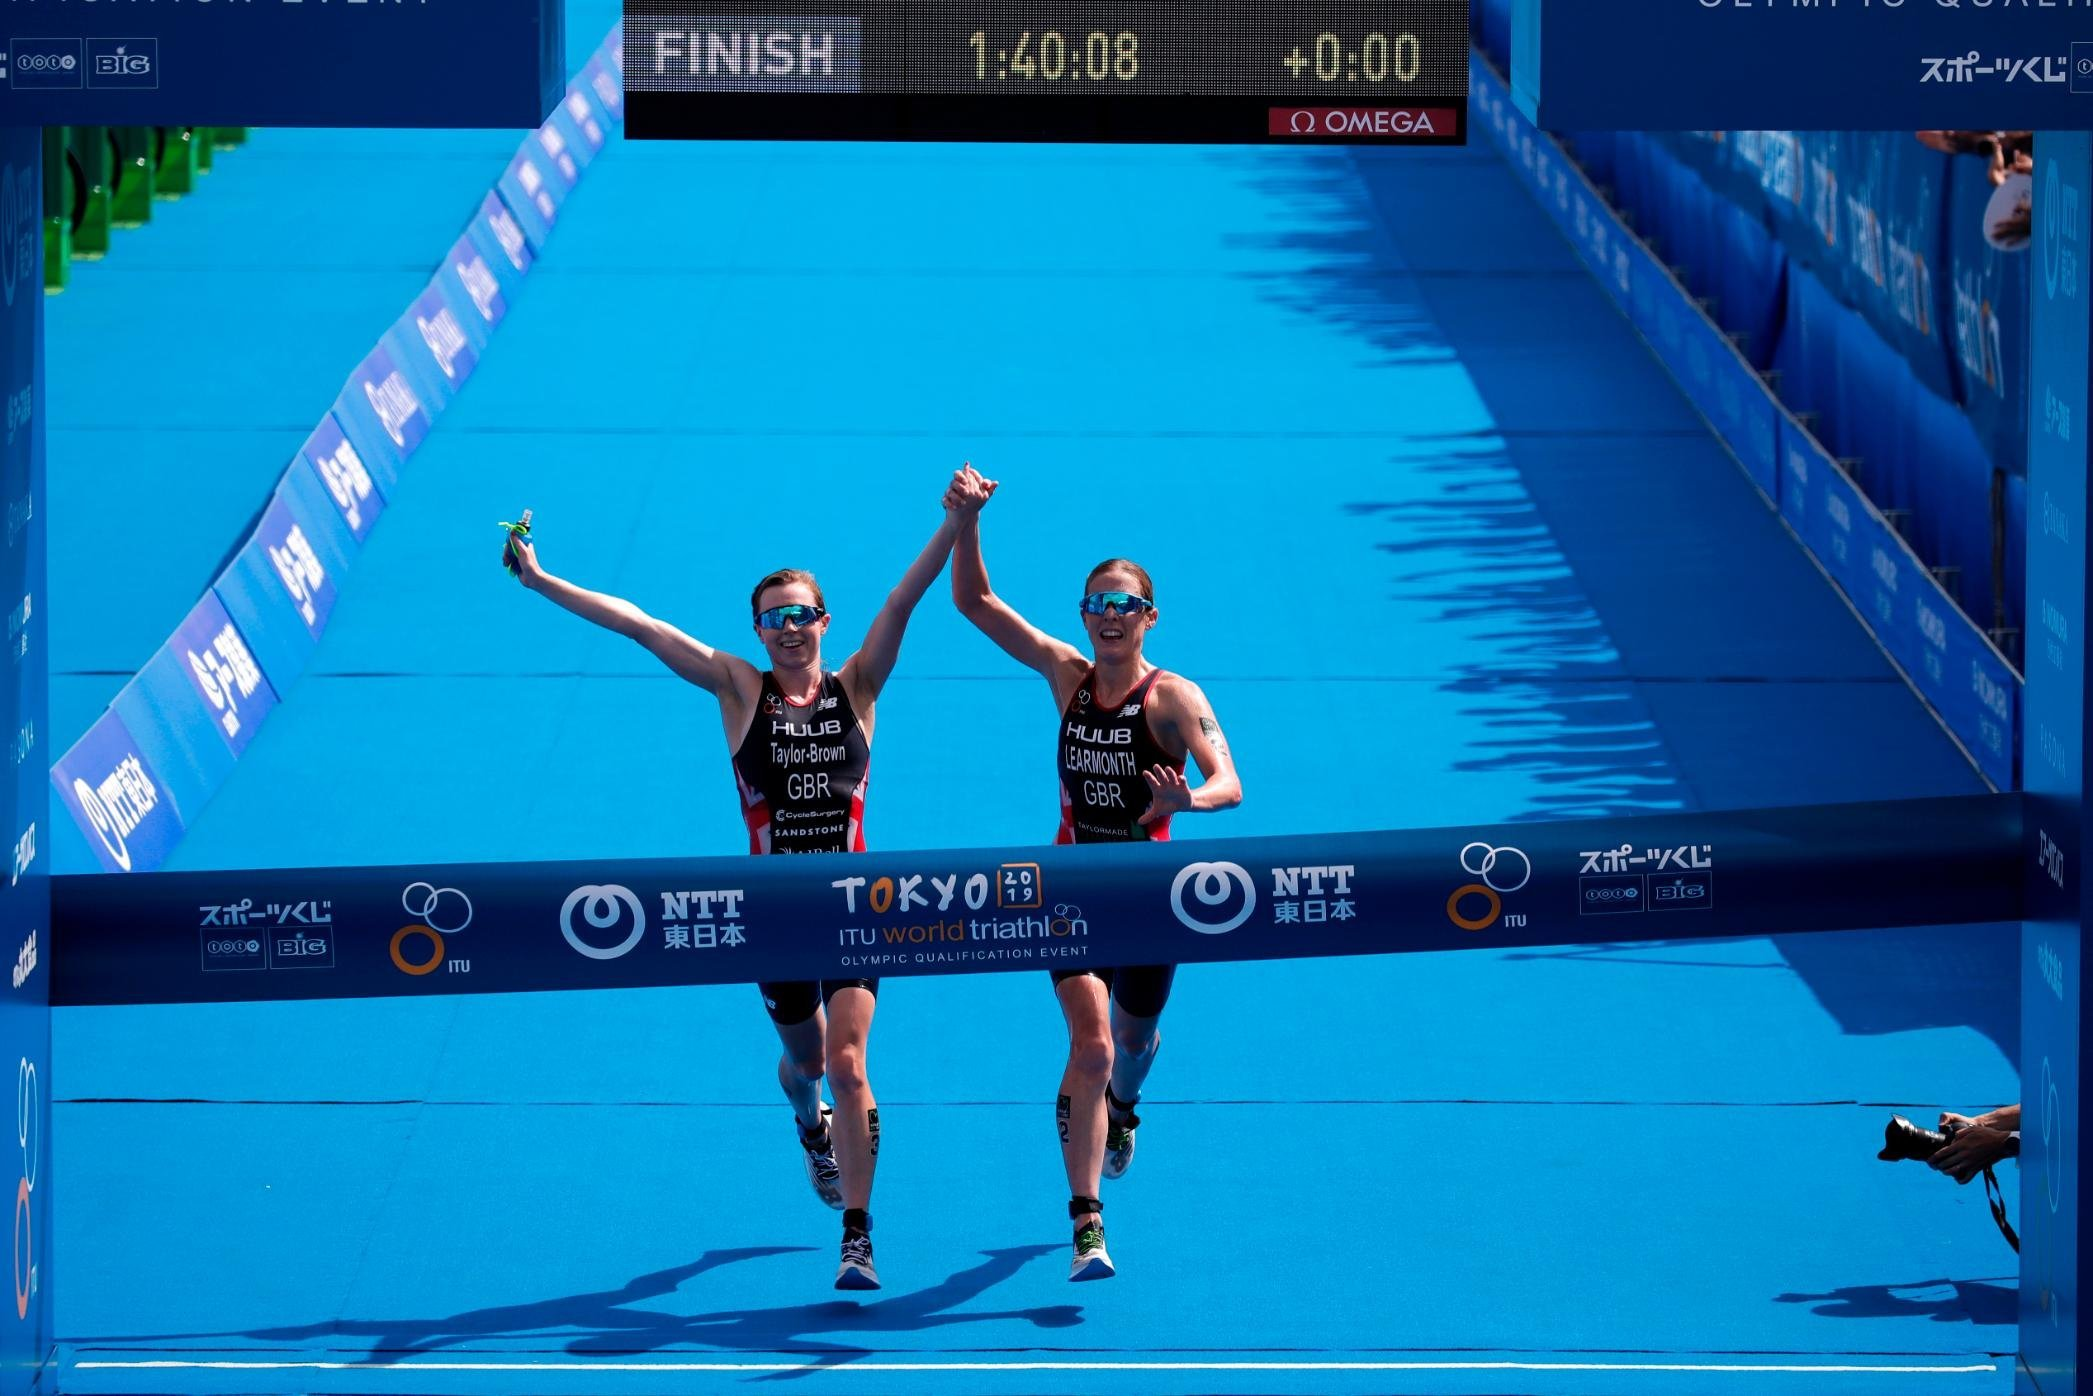 Triathletes disqualified from Olympics warm-up race for crossing finishing line hand-in-hand